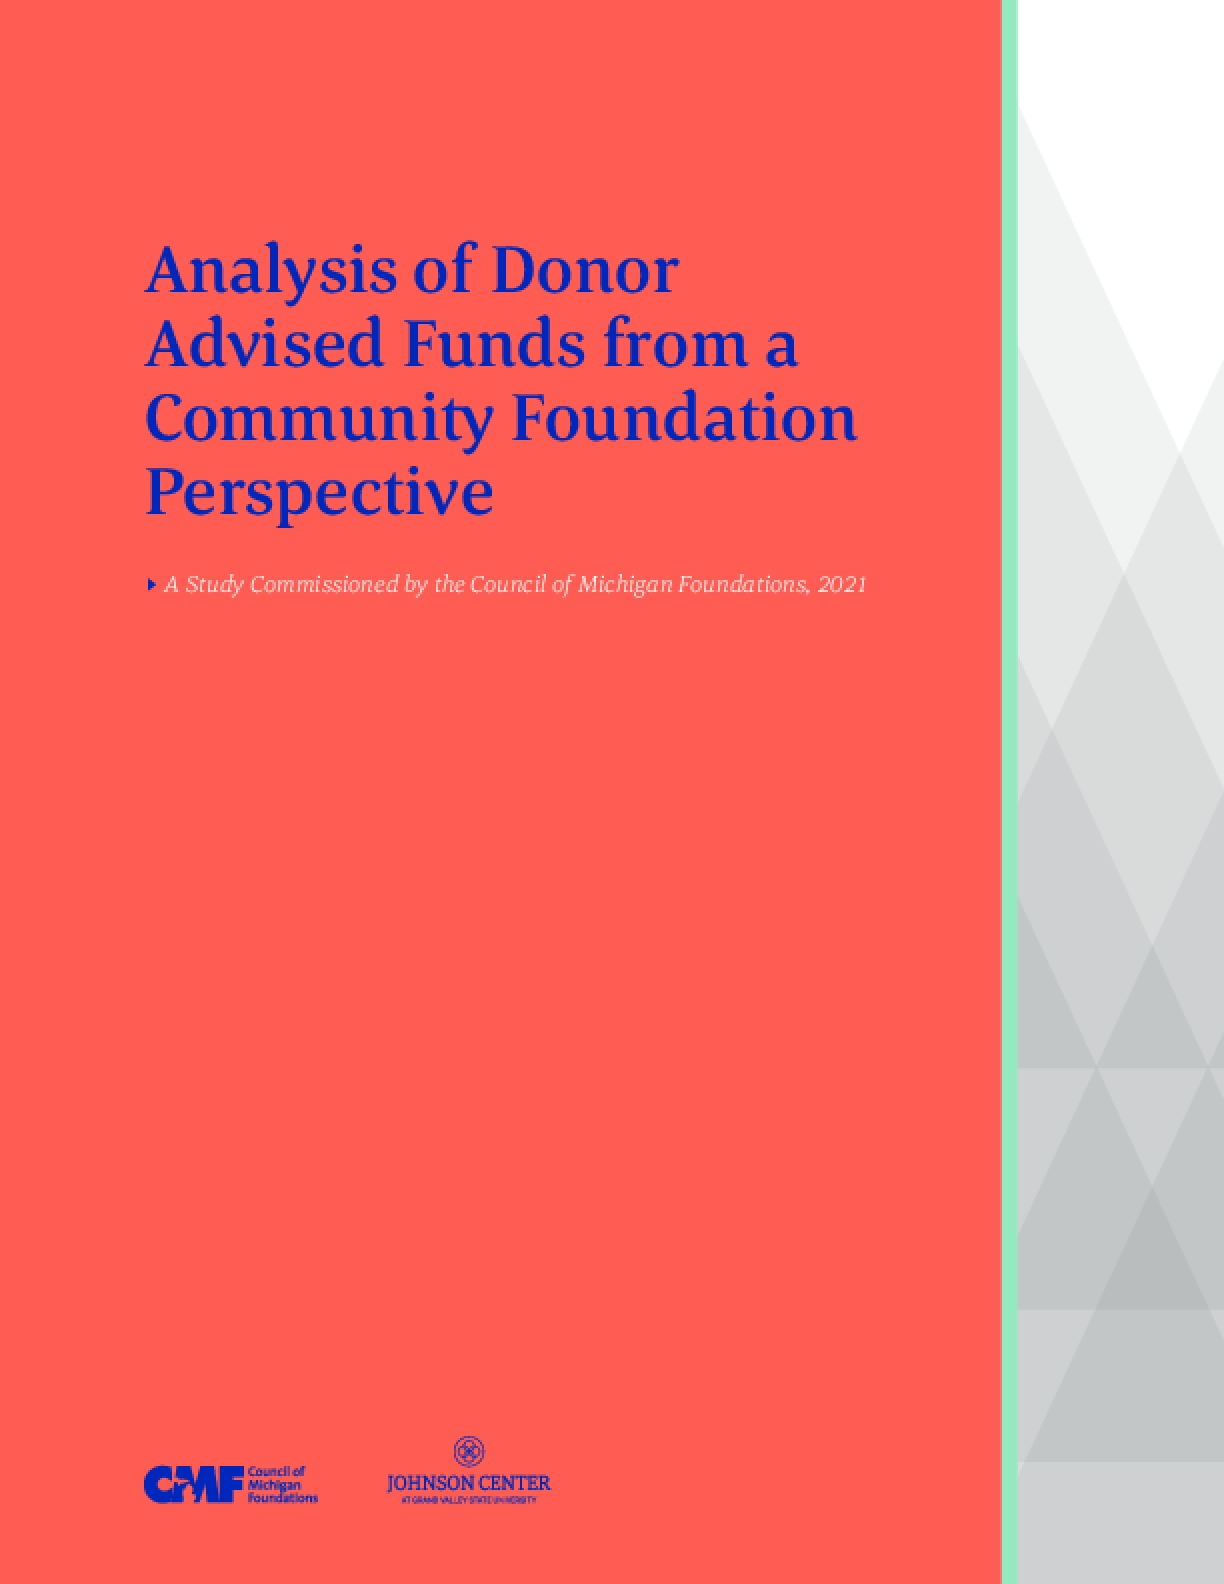 Analysis of Donor Advised Funds from a Community Foundation Perspective